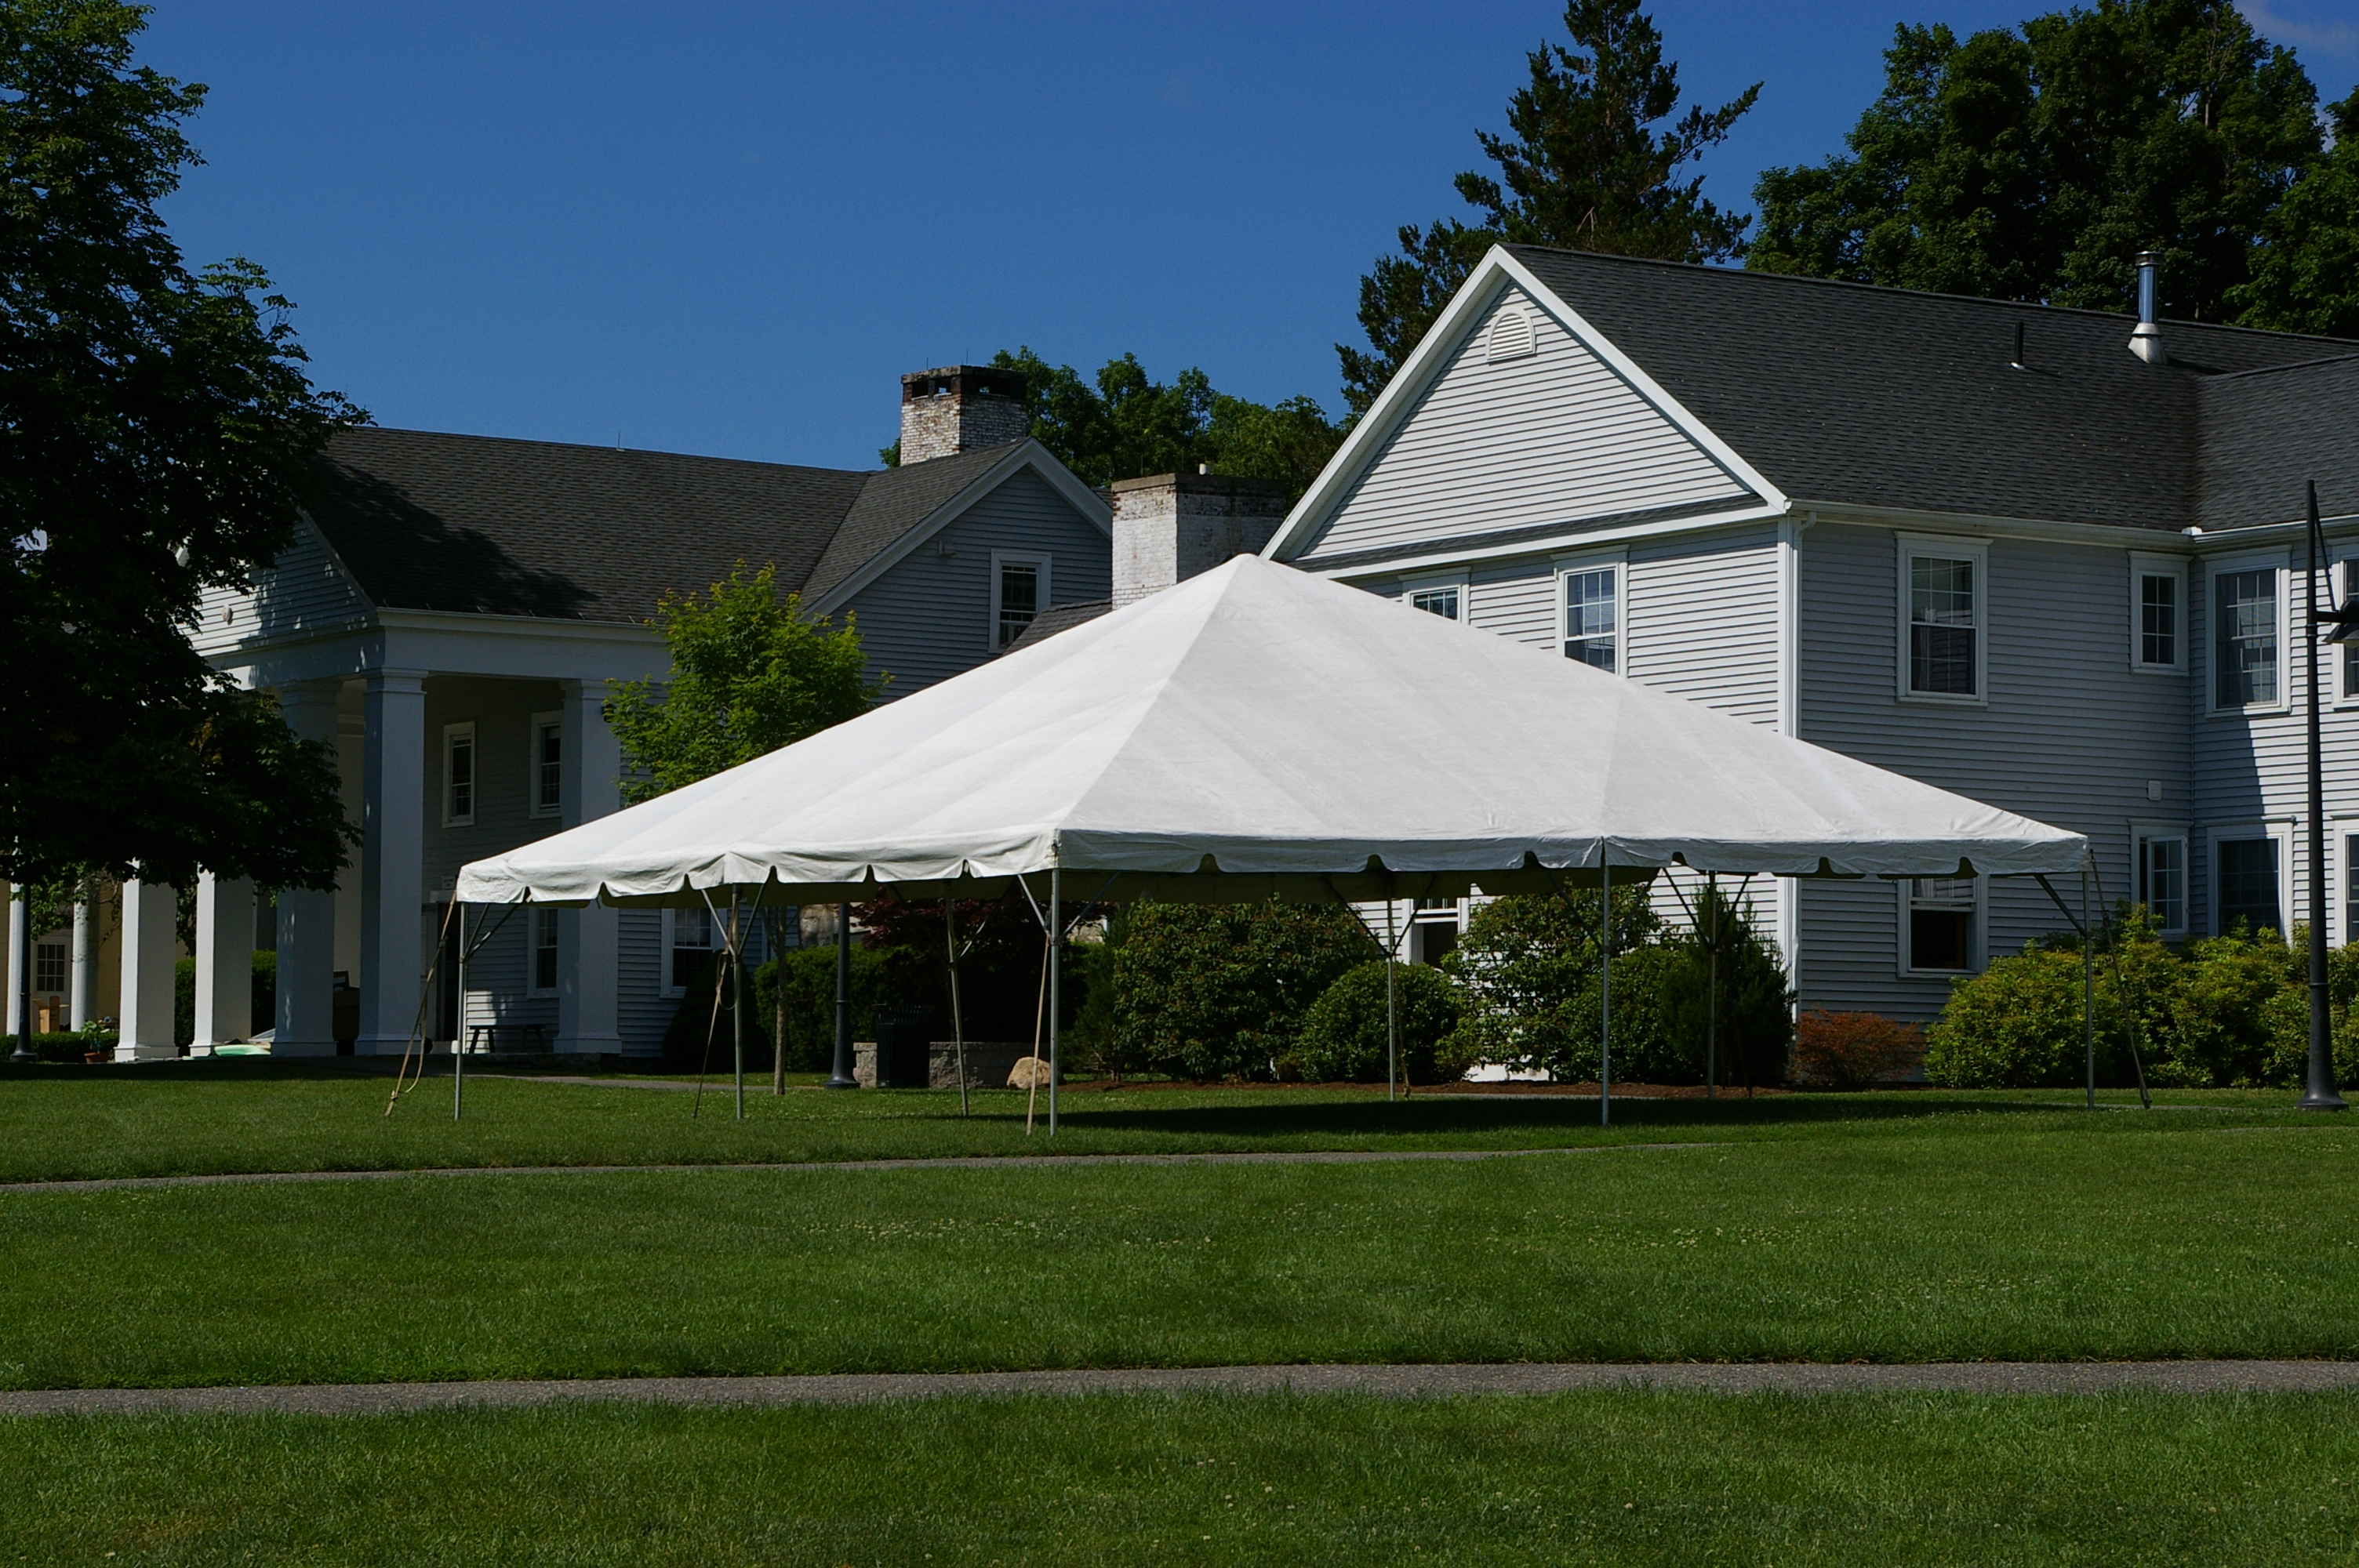 30 X 30 Frame Tent Taylor Rental Of Torrington